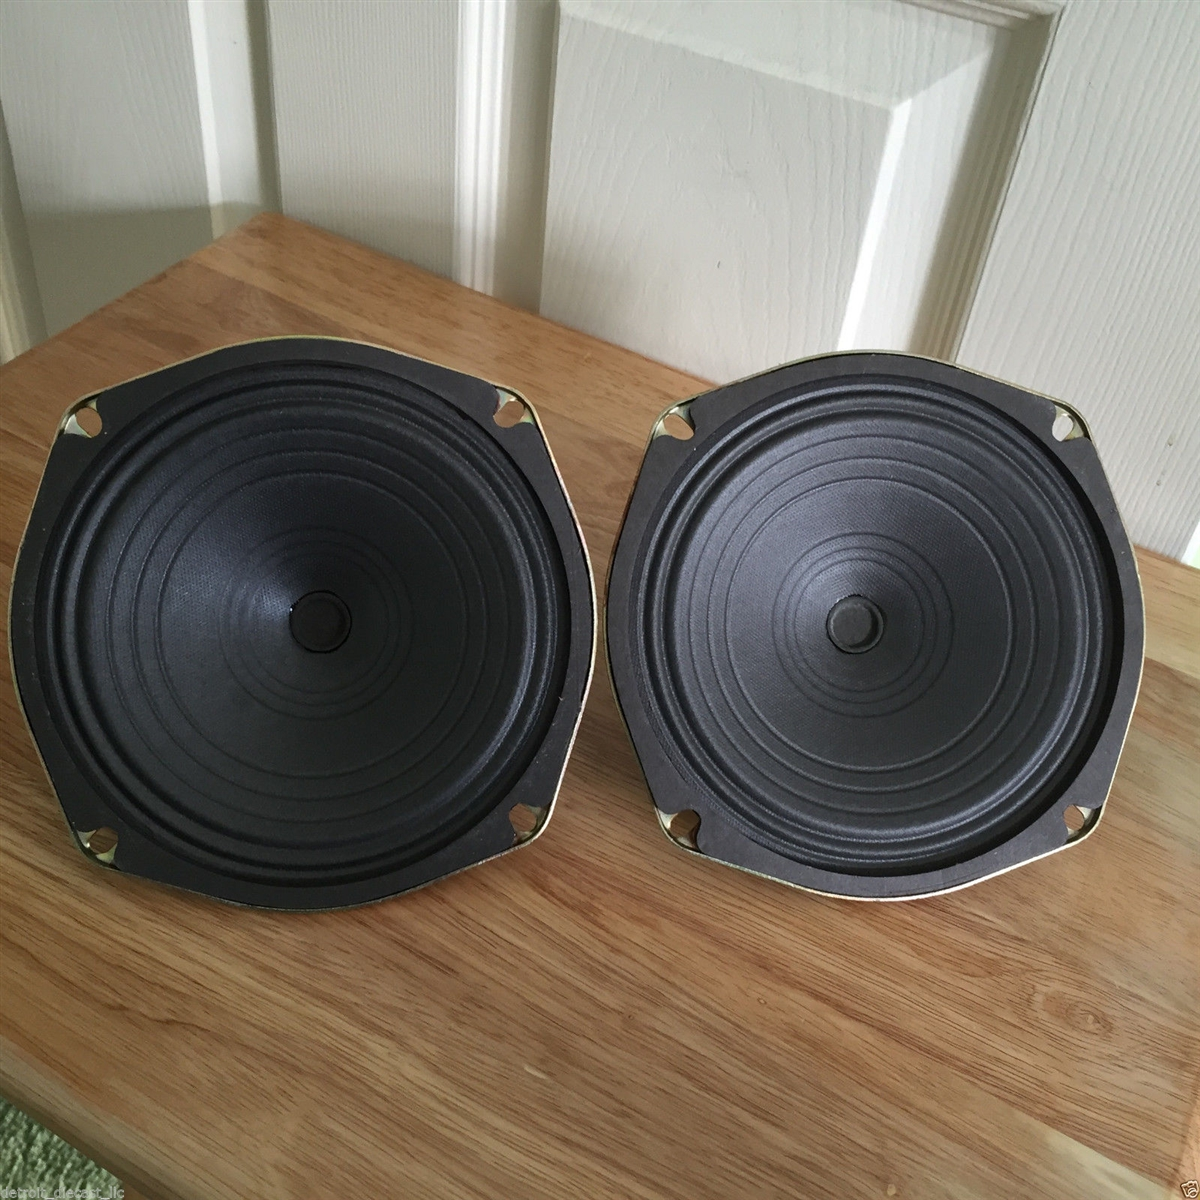 2 Nos 6 1 4 8 Ohm Projected Sound Co Op Drive In Movie Theatre Speakers